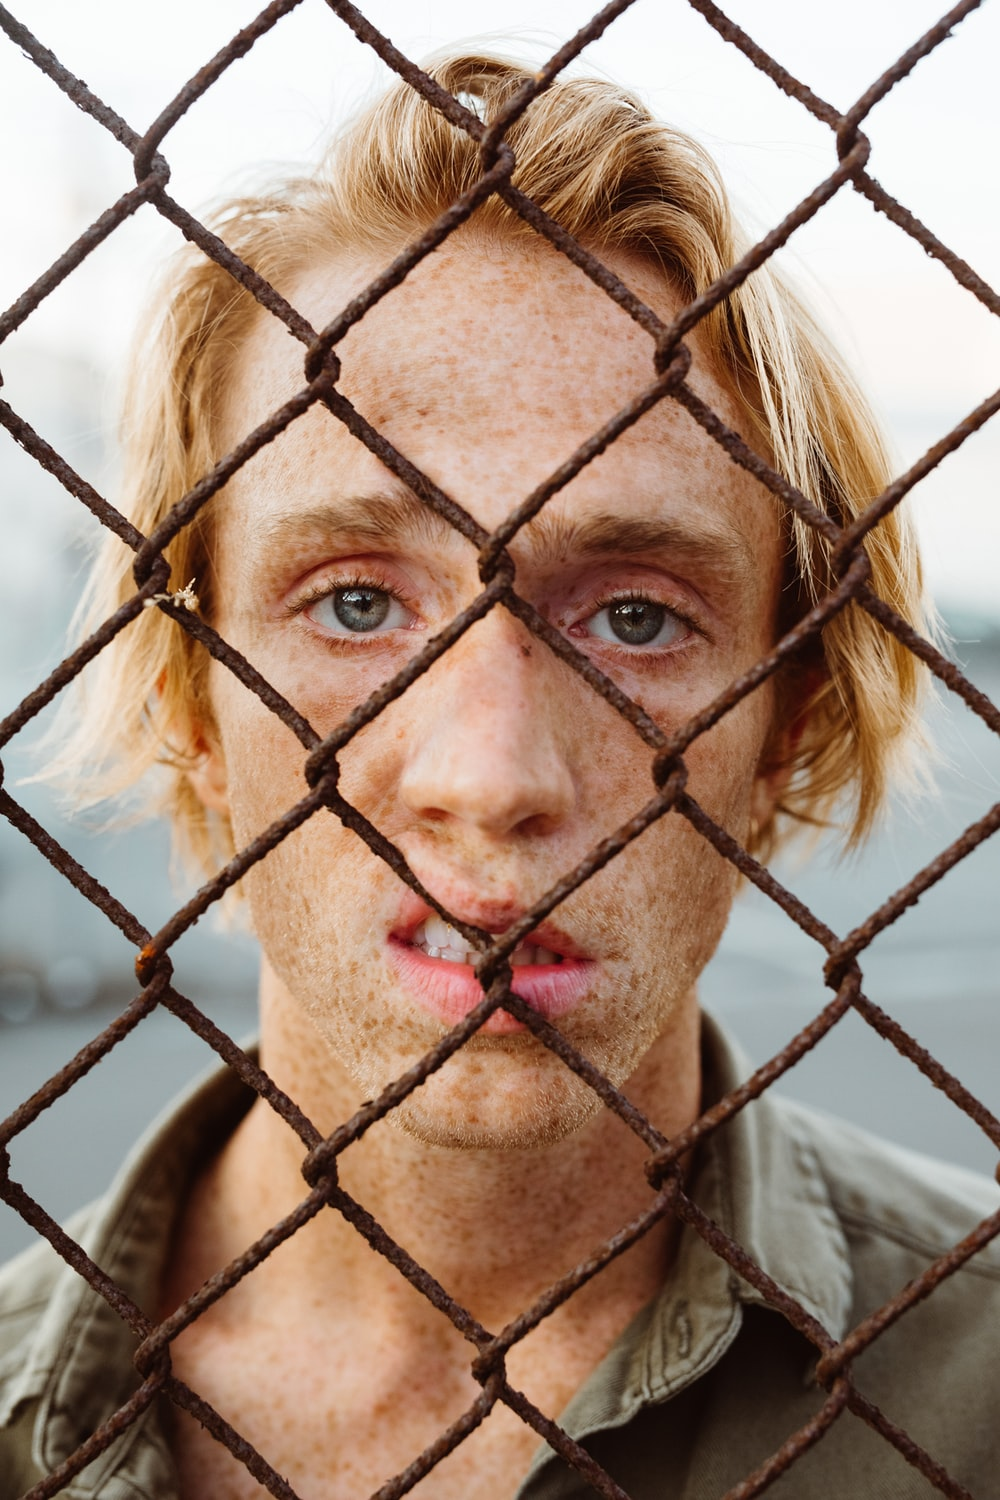 man in gray collared shirt standing behind chain link fence